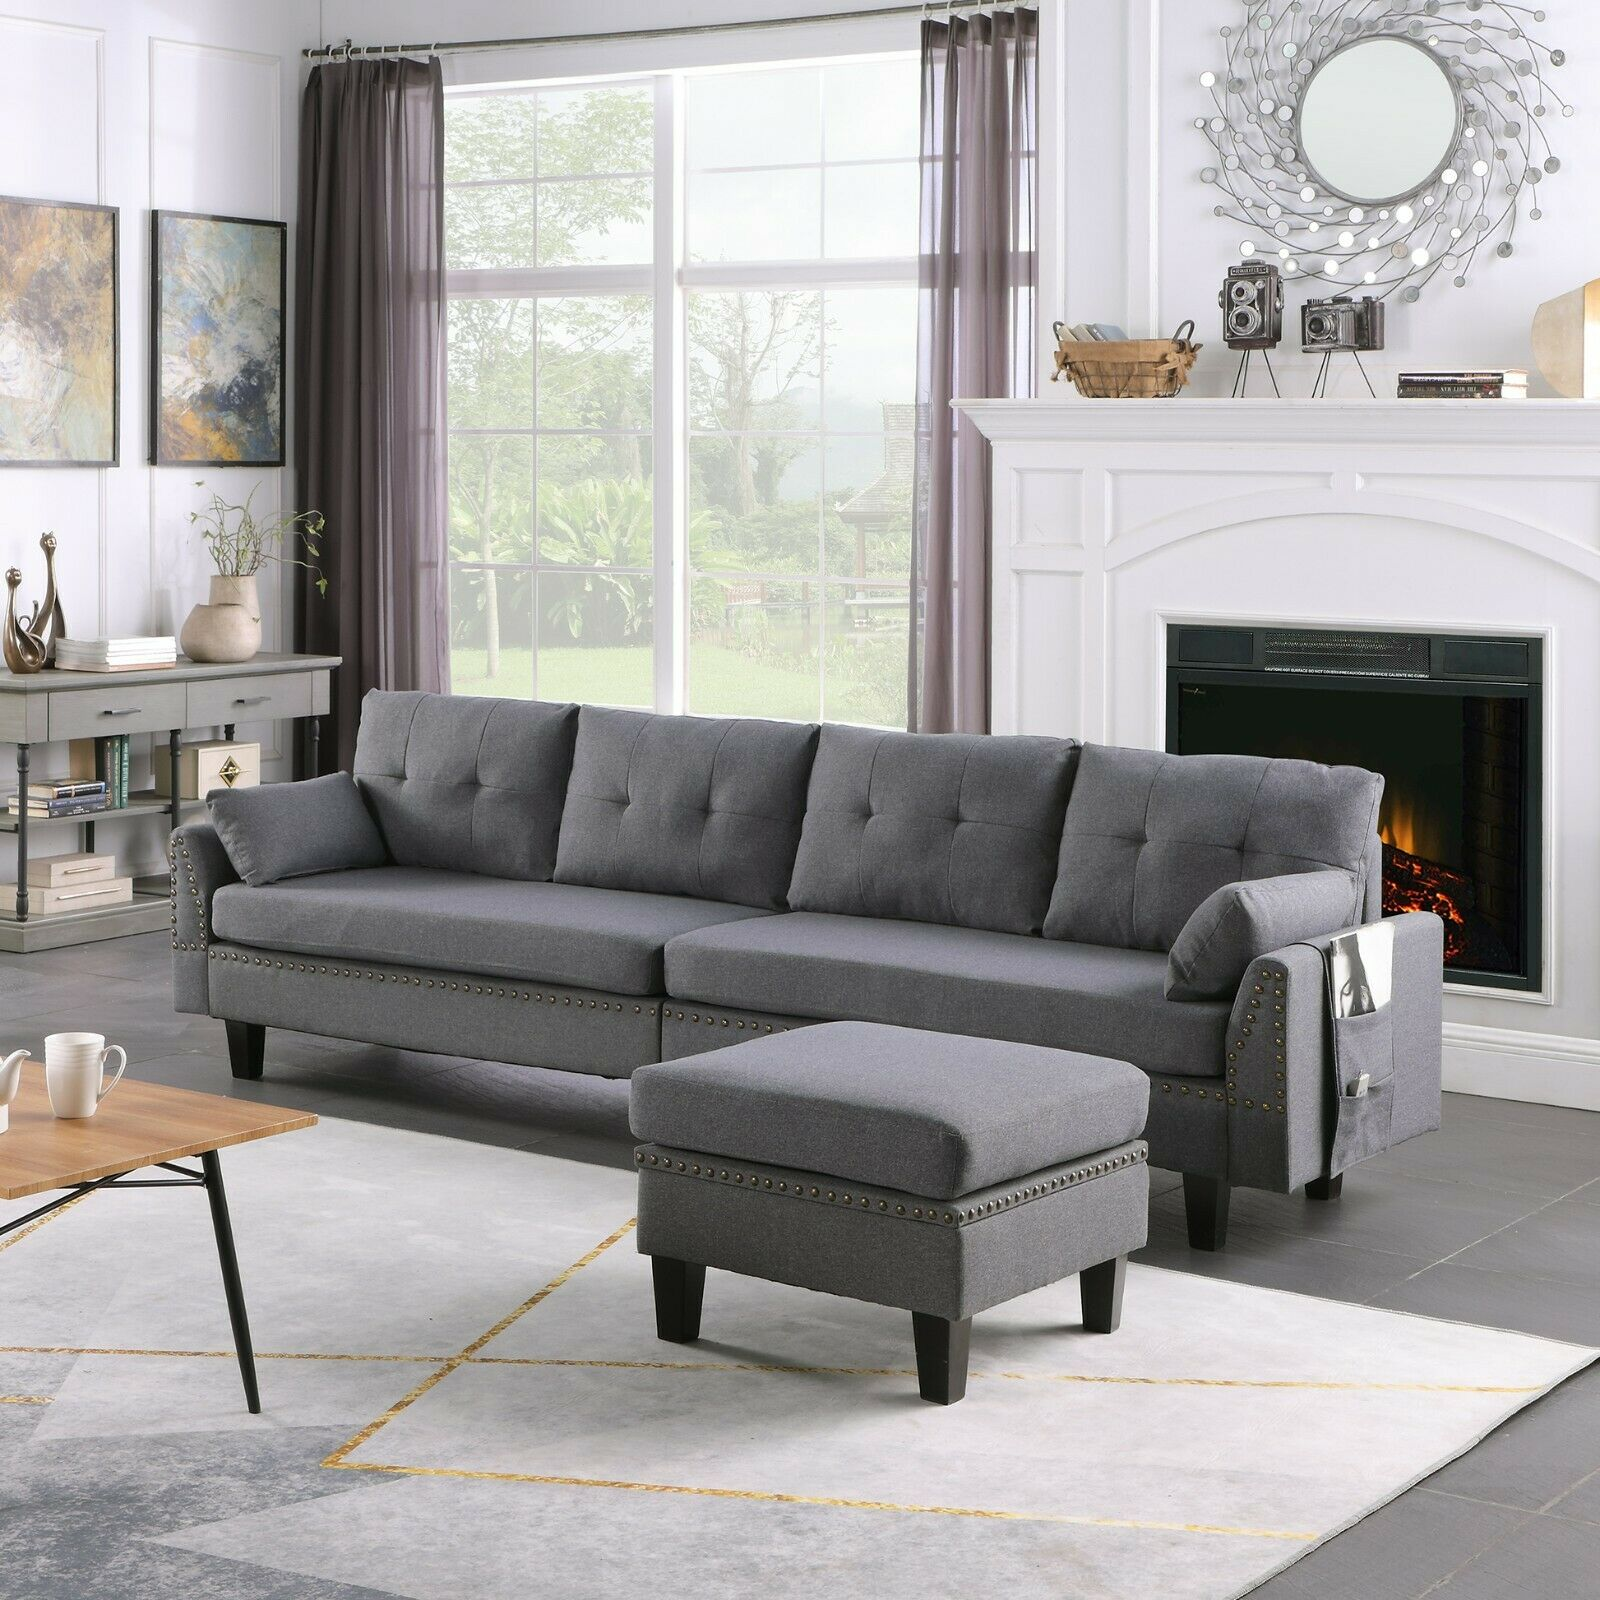 4-Seaters Sectional Sofa/Couch with Storage Ottoman Pillows Upholstered Fabric 3